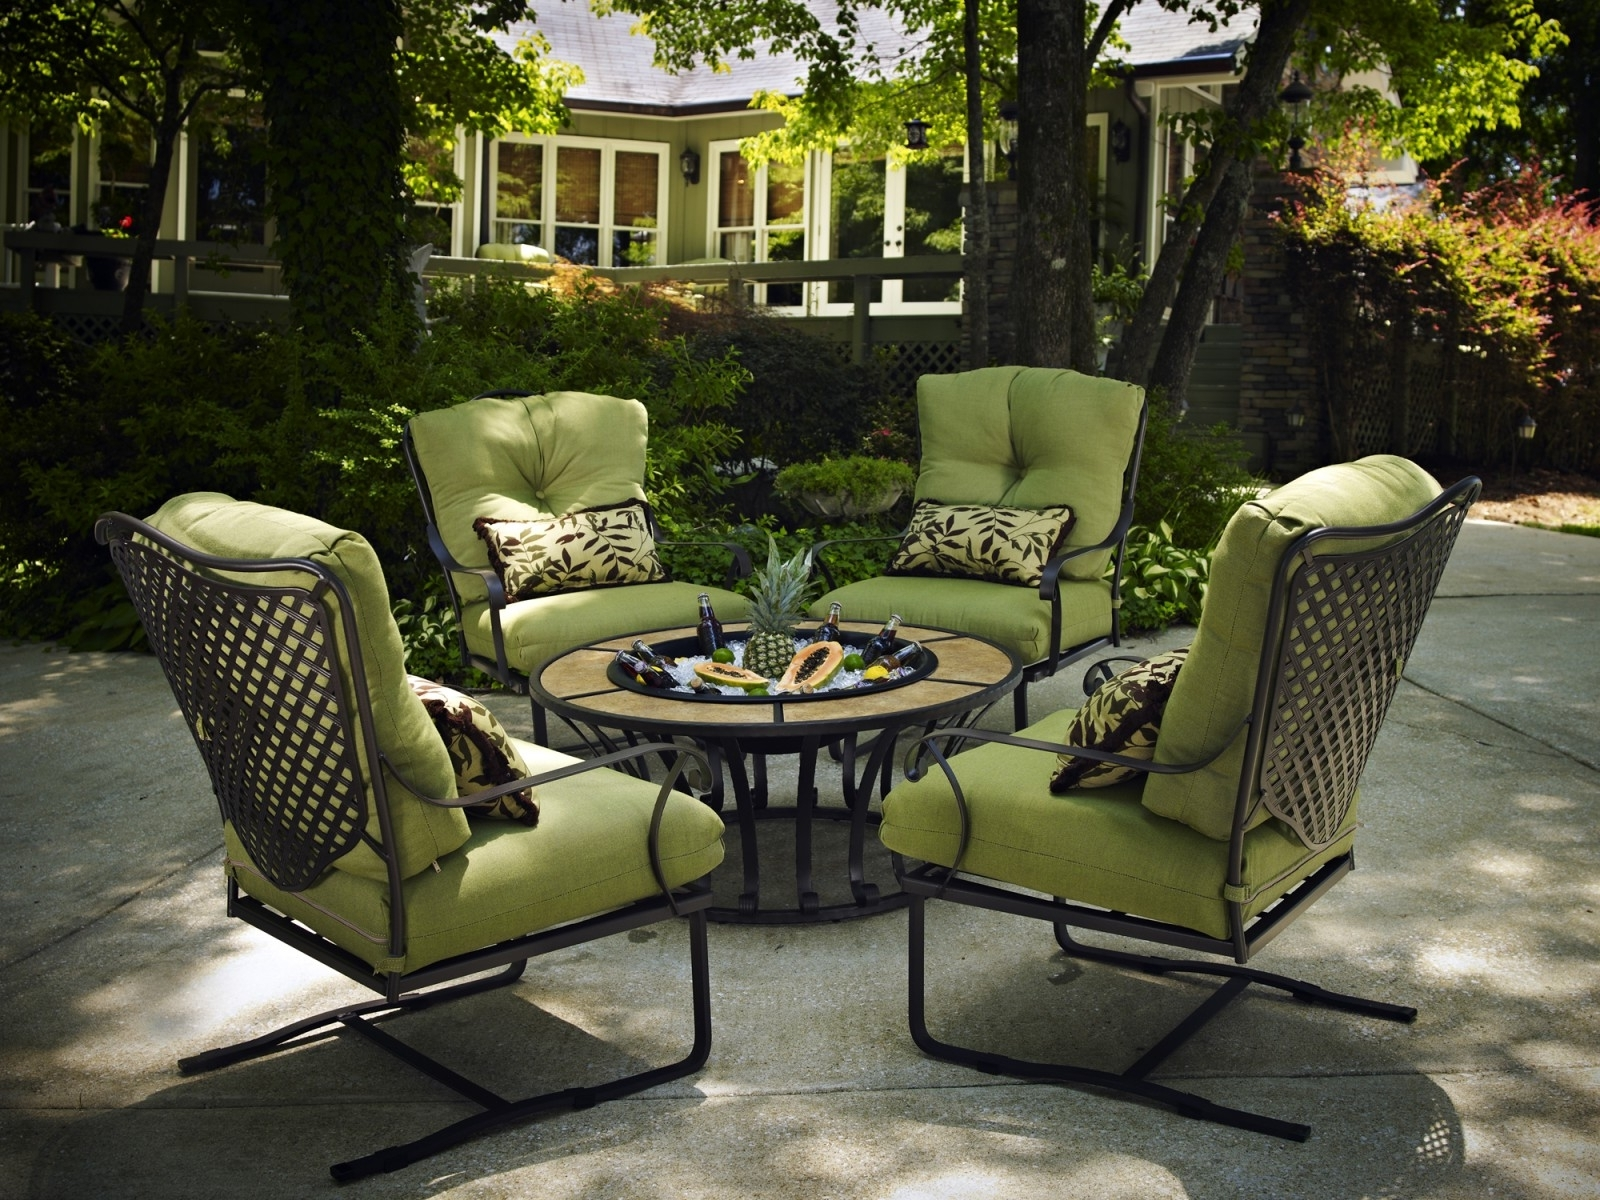 Steel Patio Conversation Sets In 2018 Patio : Wrought Iron Patio Furnitureca Furniture Value Plantation (View 19 of 20)